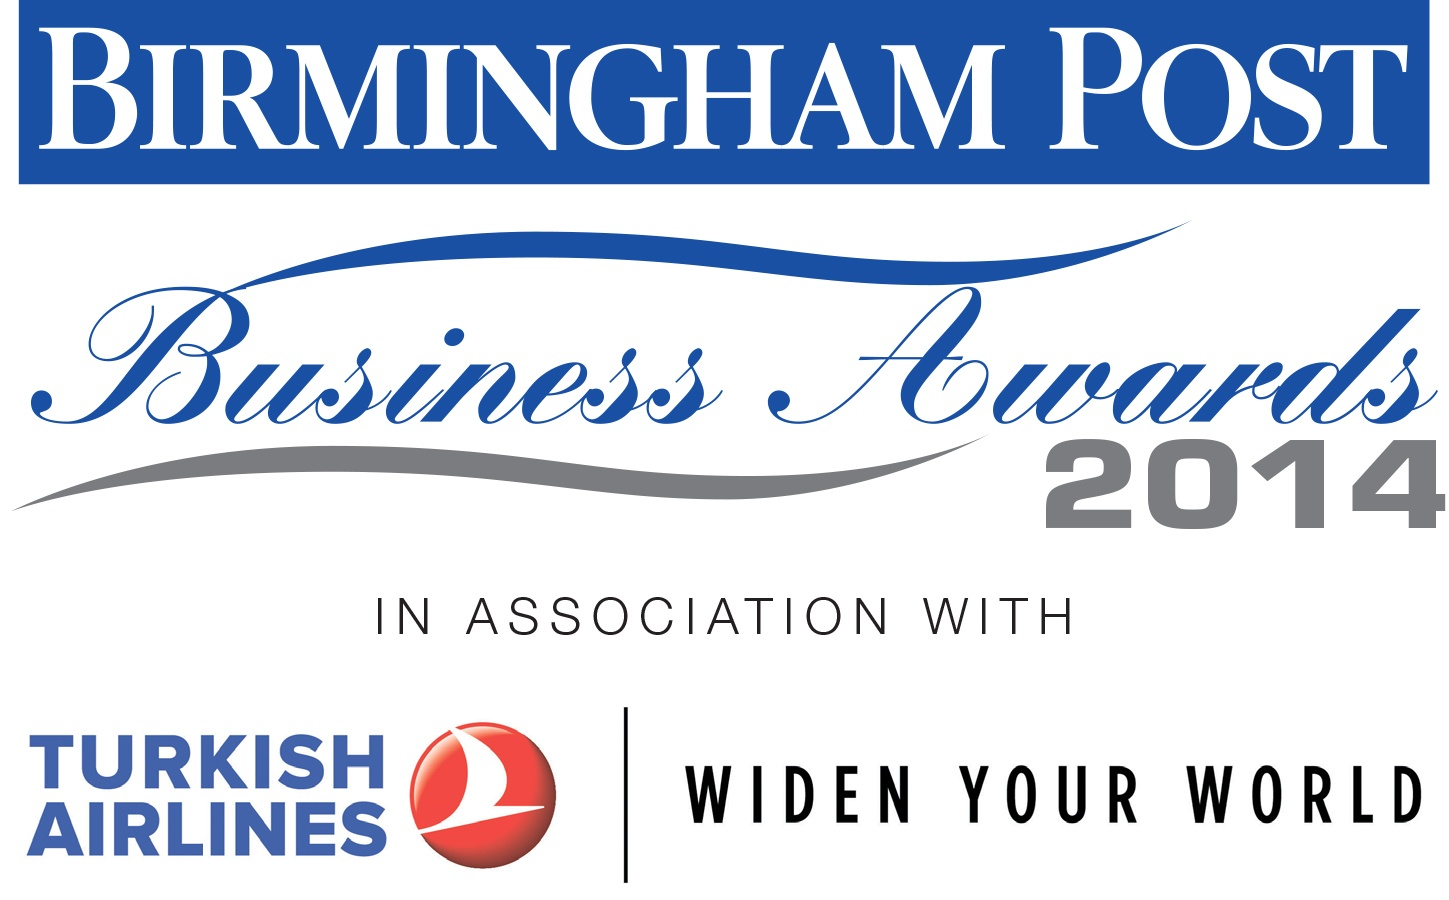 CrowdControlHQ shortlisted for Birmingham Post Technology and Digital Business of the Year 2014 Award